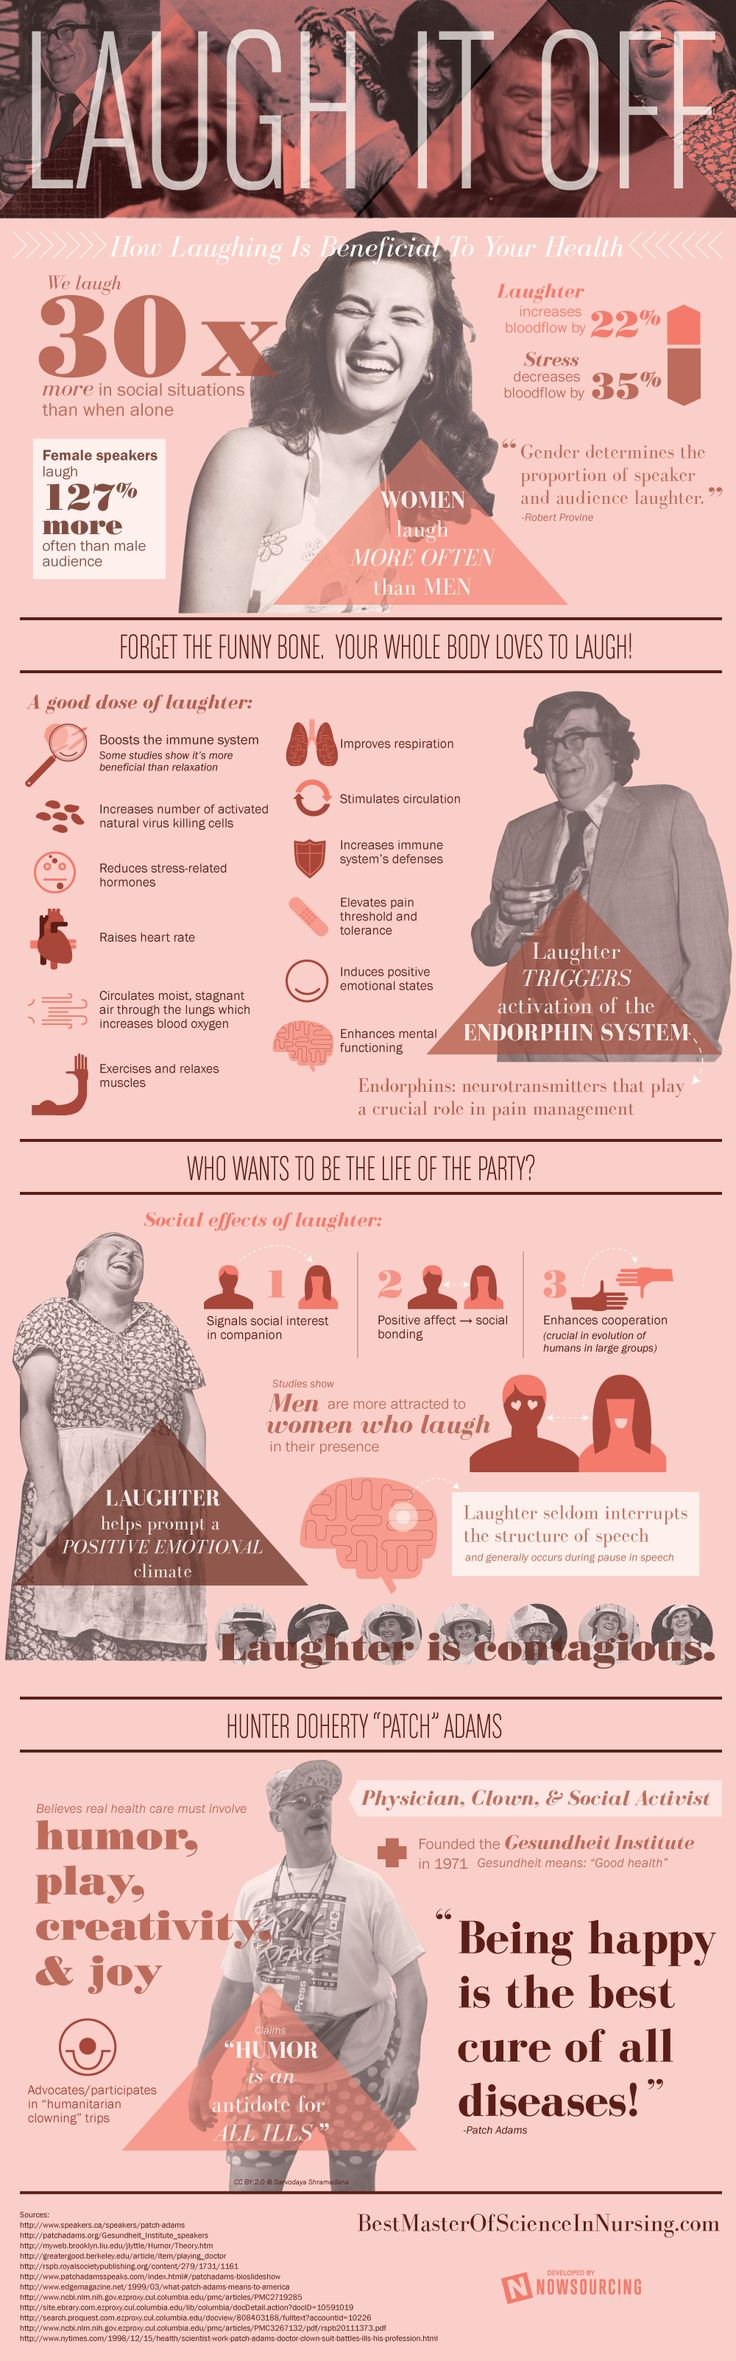 How And Why Laughing Is Beneficial To Our Health #infographic #Health #Laughing